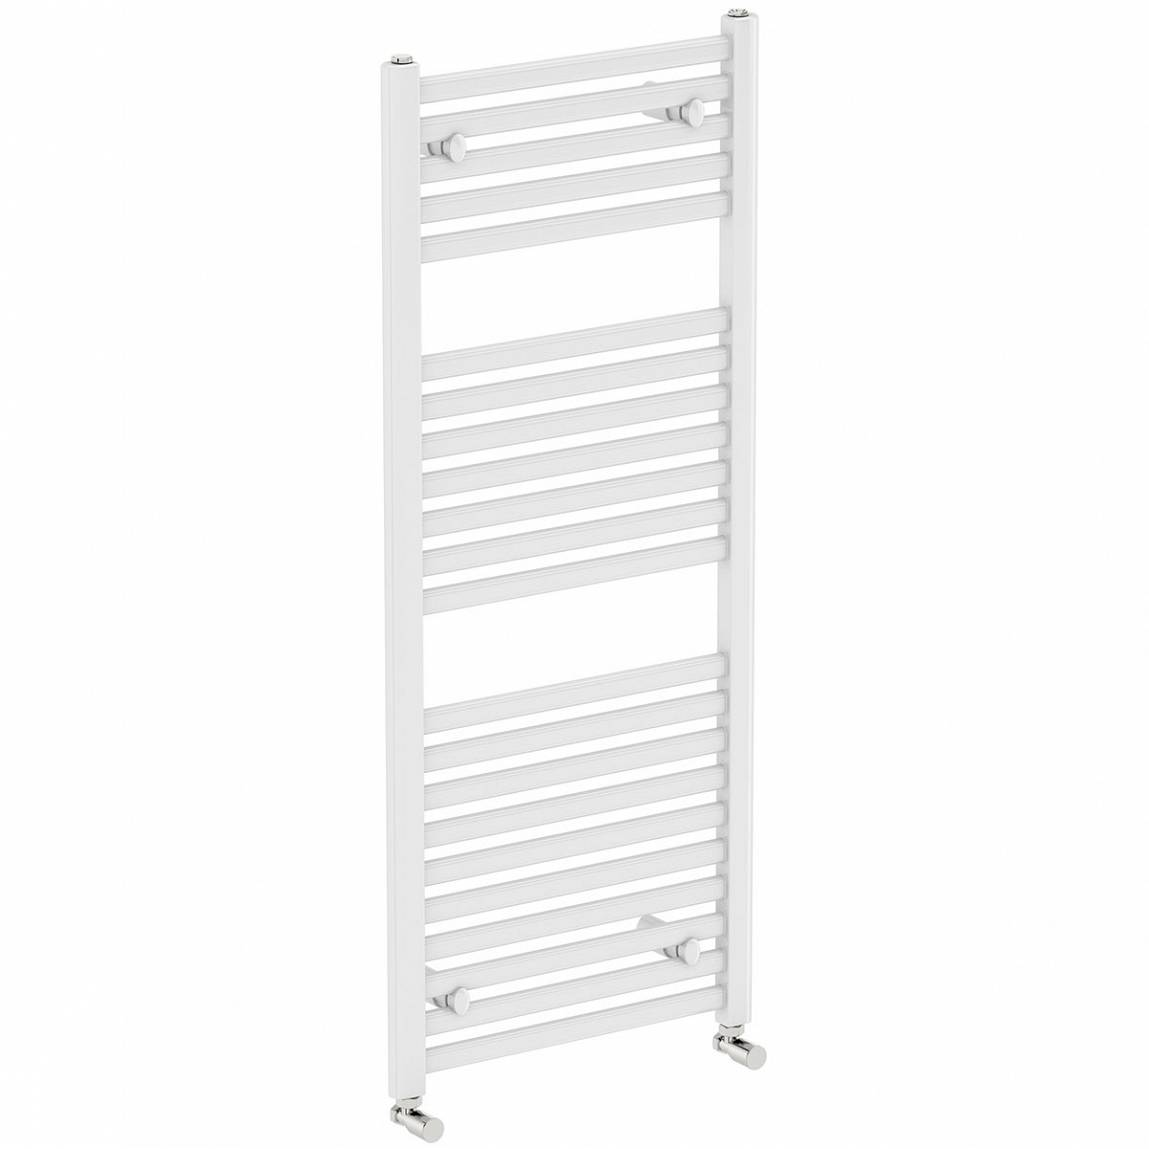 Image of White Heated Towel Rail 1200 x 600